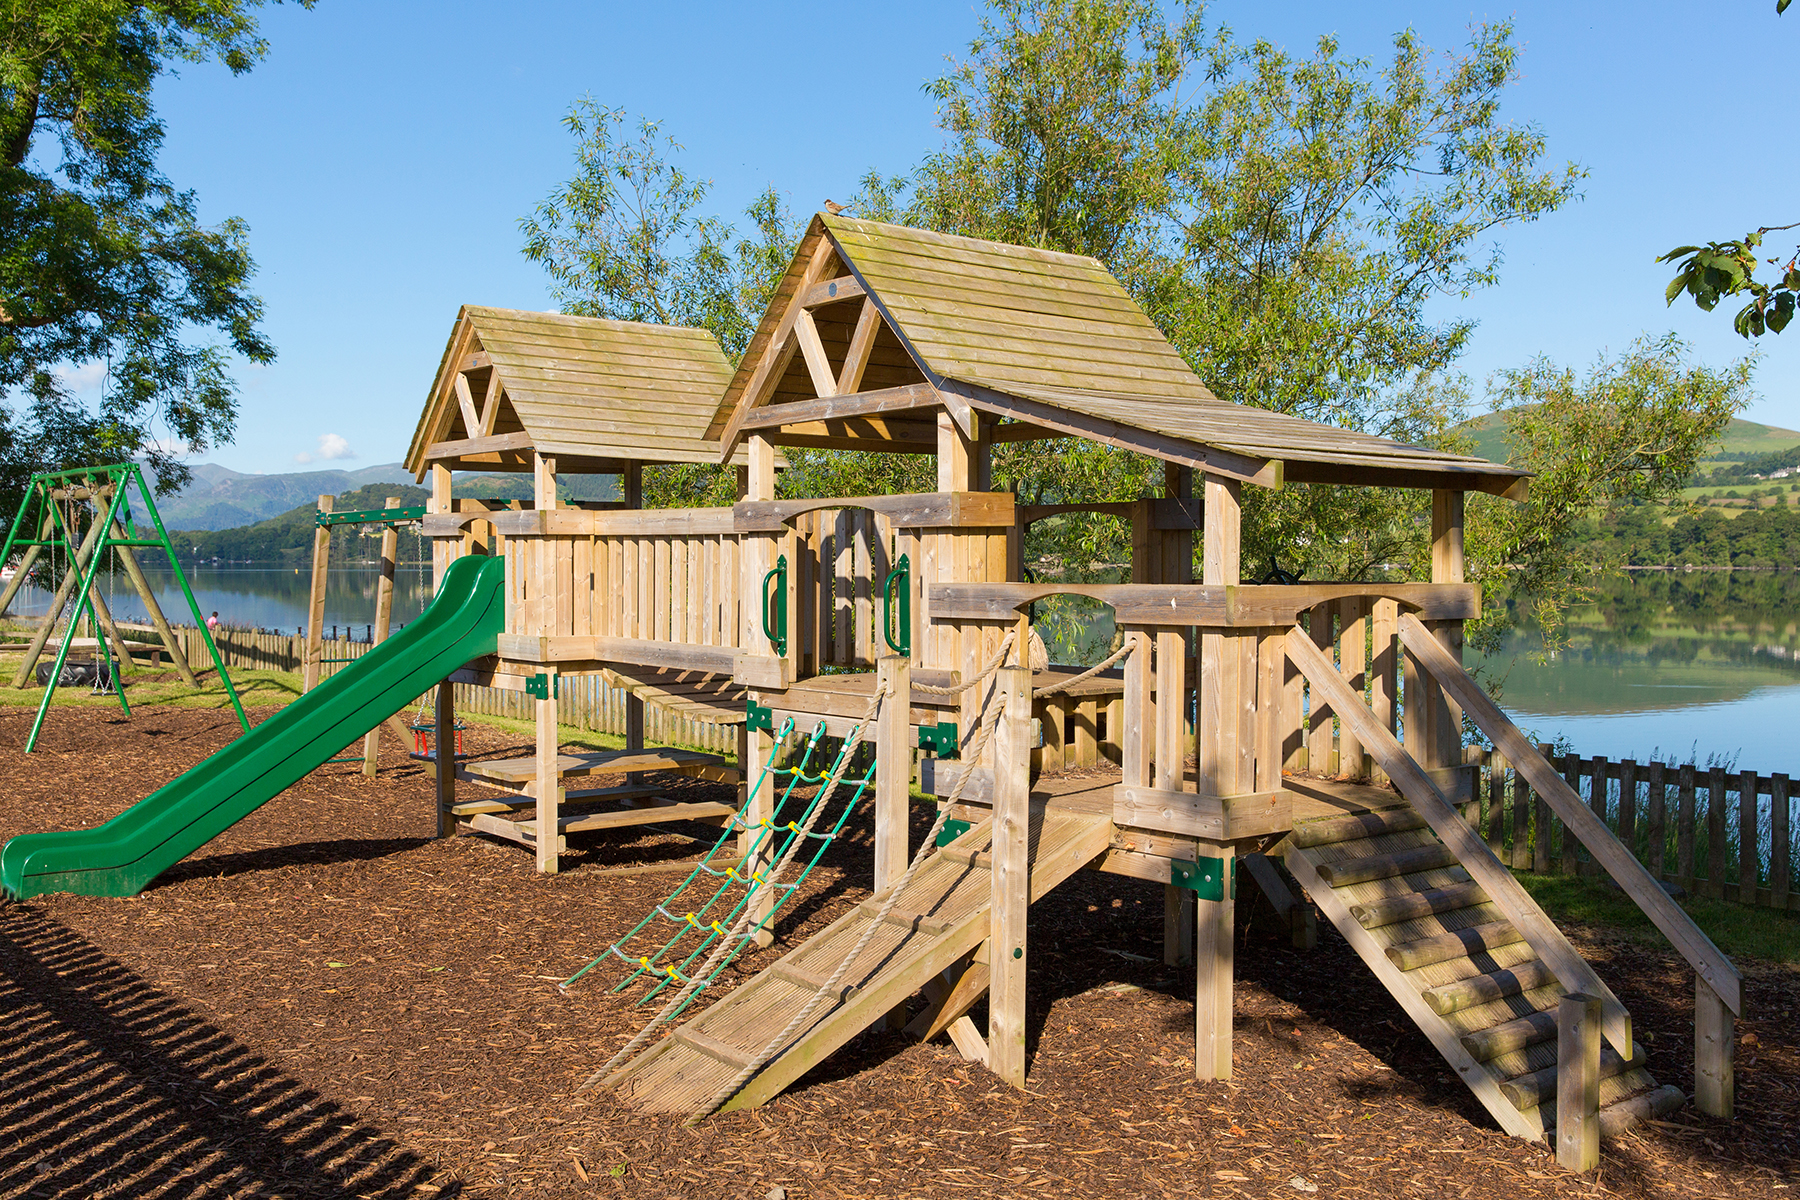 Country-Lumber-Treated-Playground.jpg